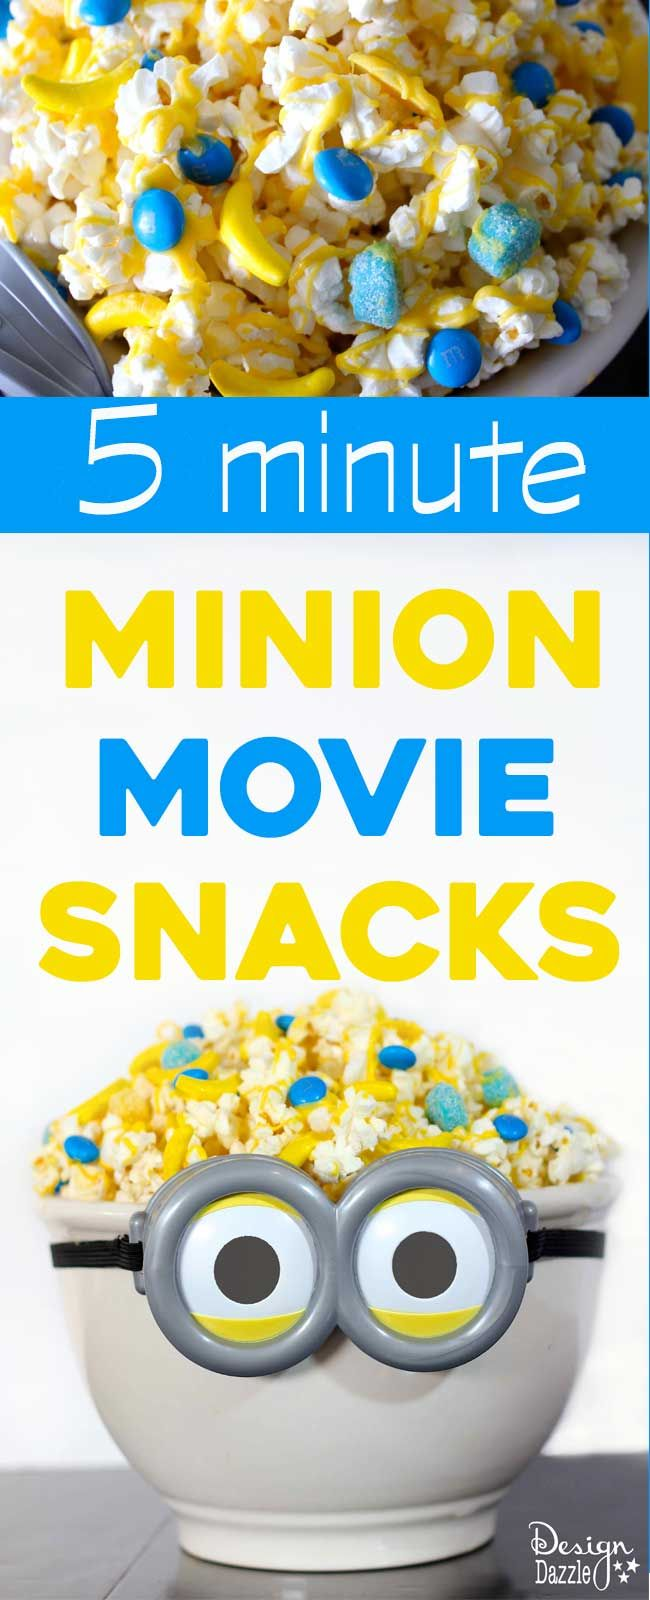 Design Dazzle has yummy 5 minute Minion Movie Snacks for you to enjoy for your #MinionMoveNight!